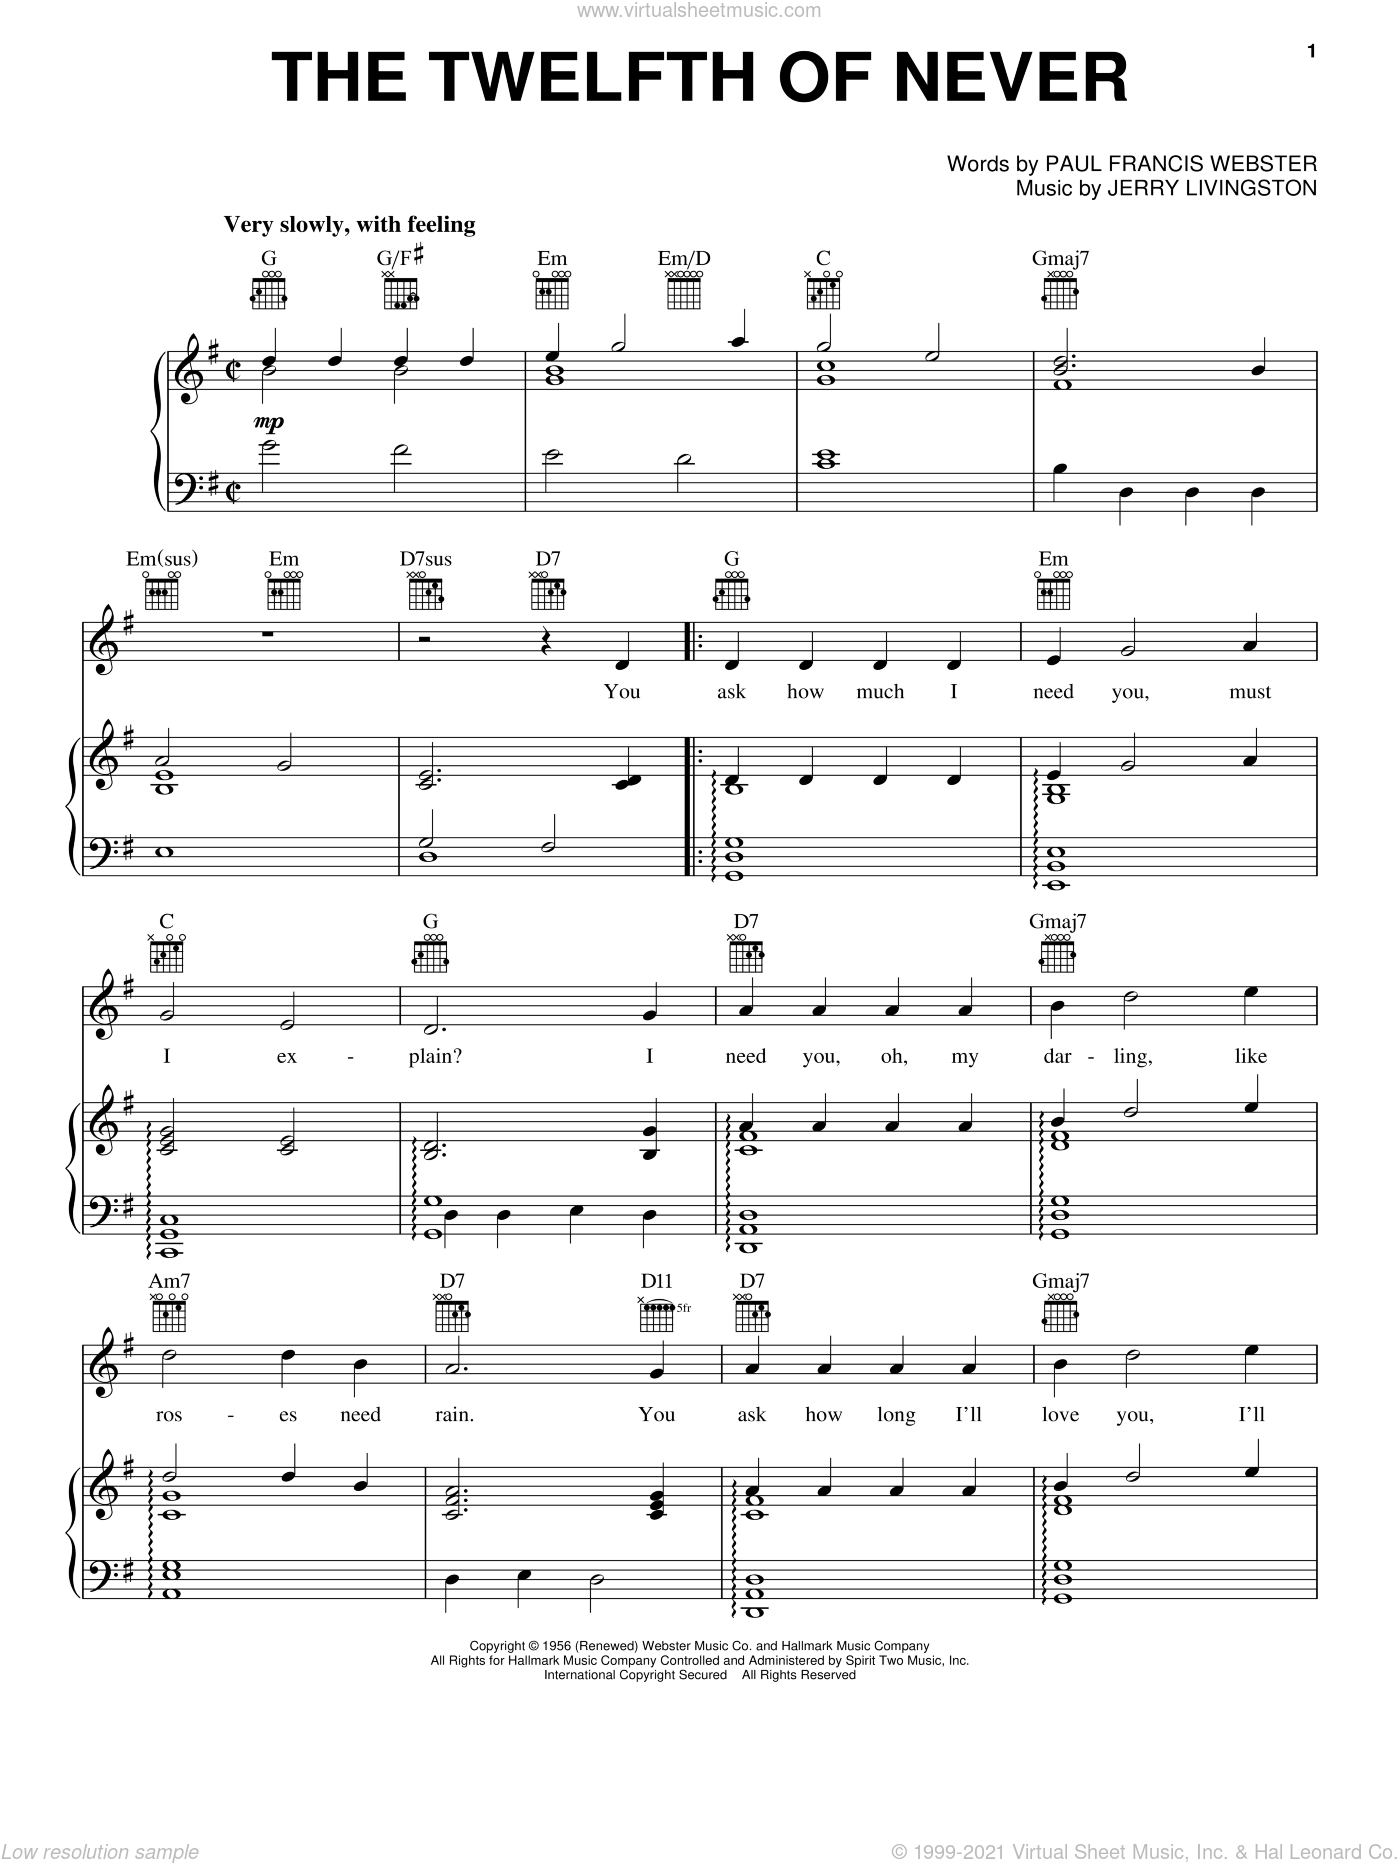 The Twelfth Of Never sheet music for voice, piano or guitar by Johnny Mathis, Donny Osmond, Jerry Livingston and Paul Francis Webster, intermediate skill level